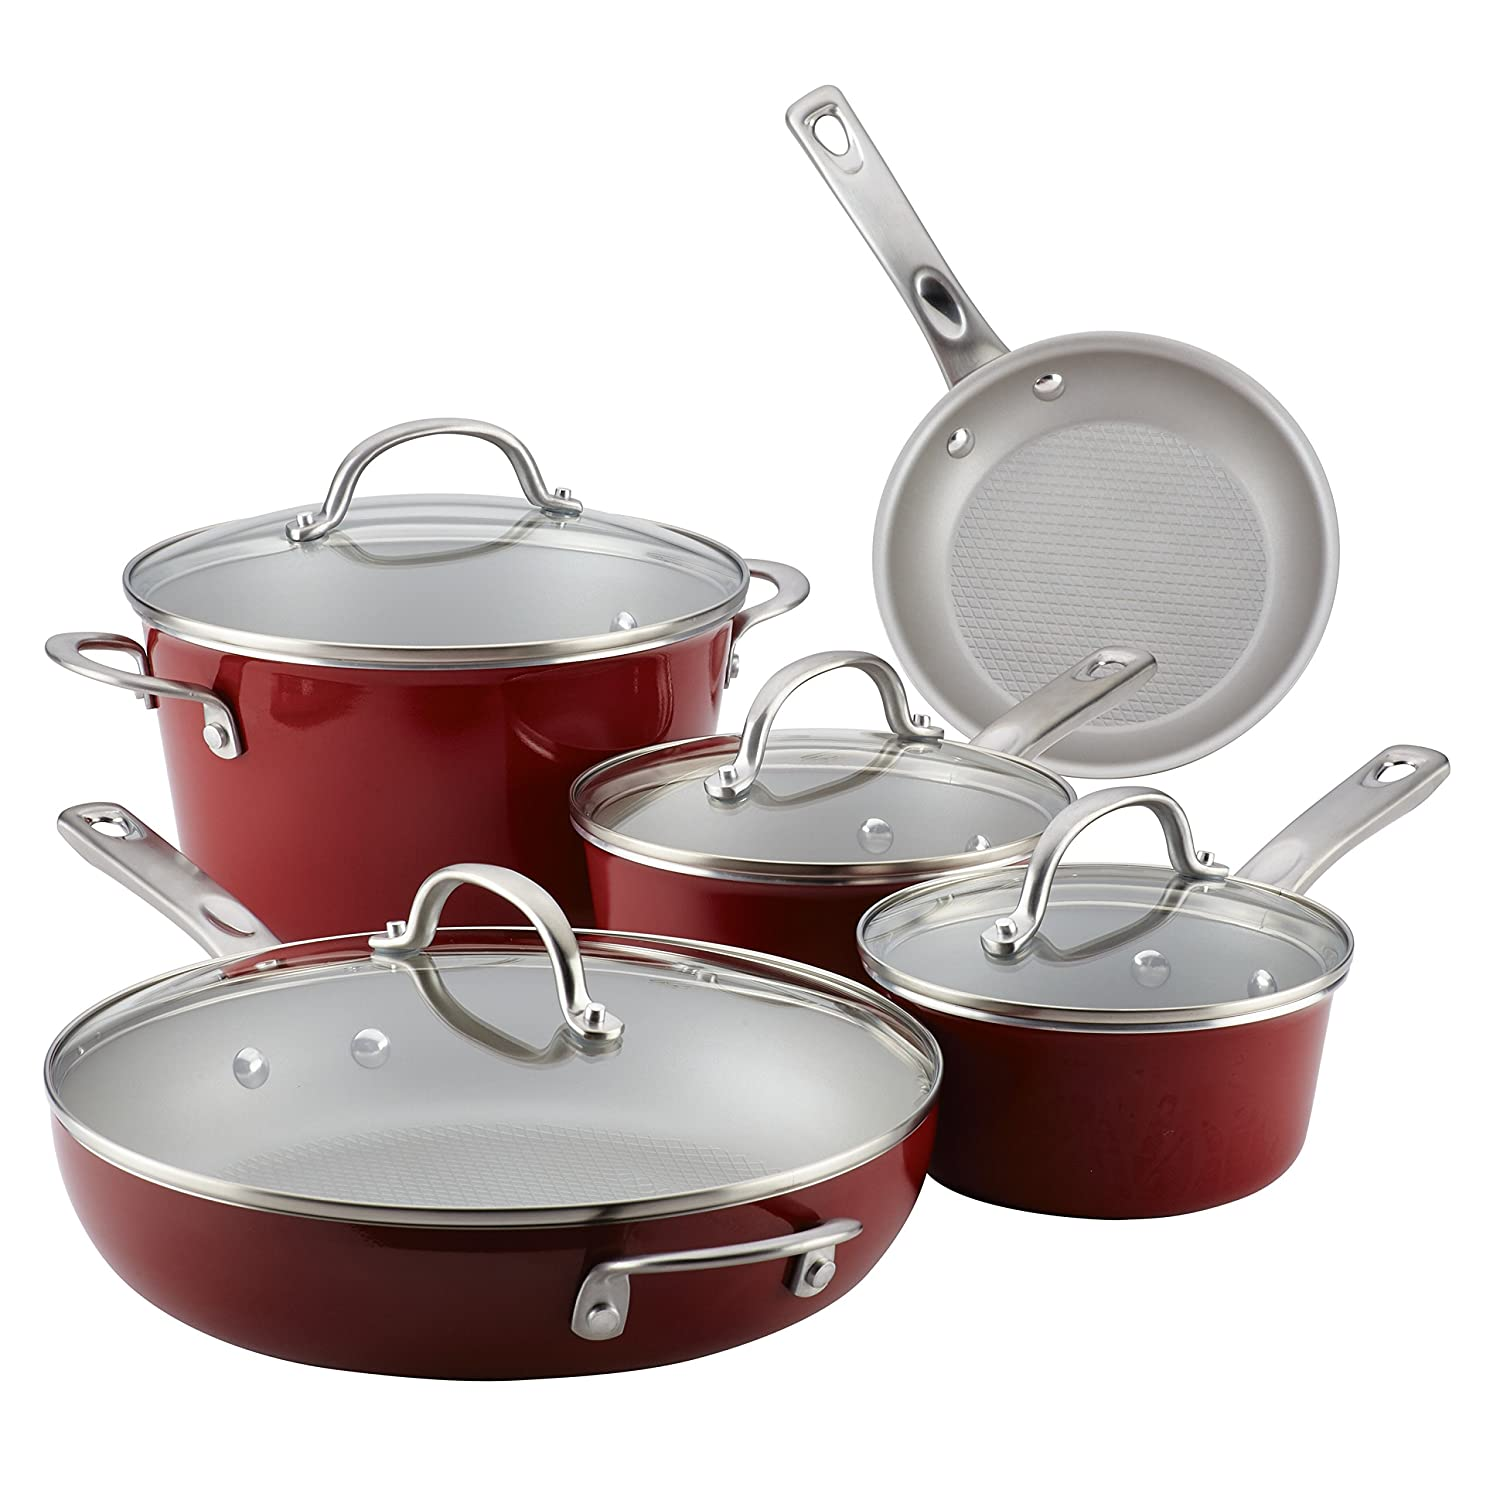 Ayesha Home Collection Porcelain Enamel Nonstick Cookware Set, Sienna Red, 9-Piece